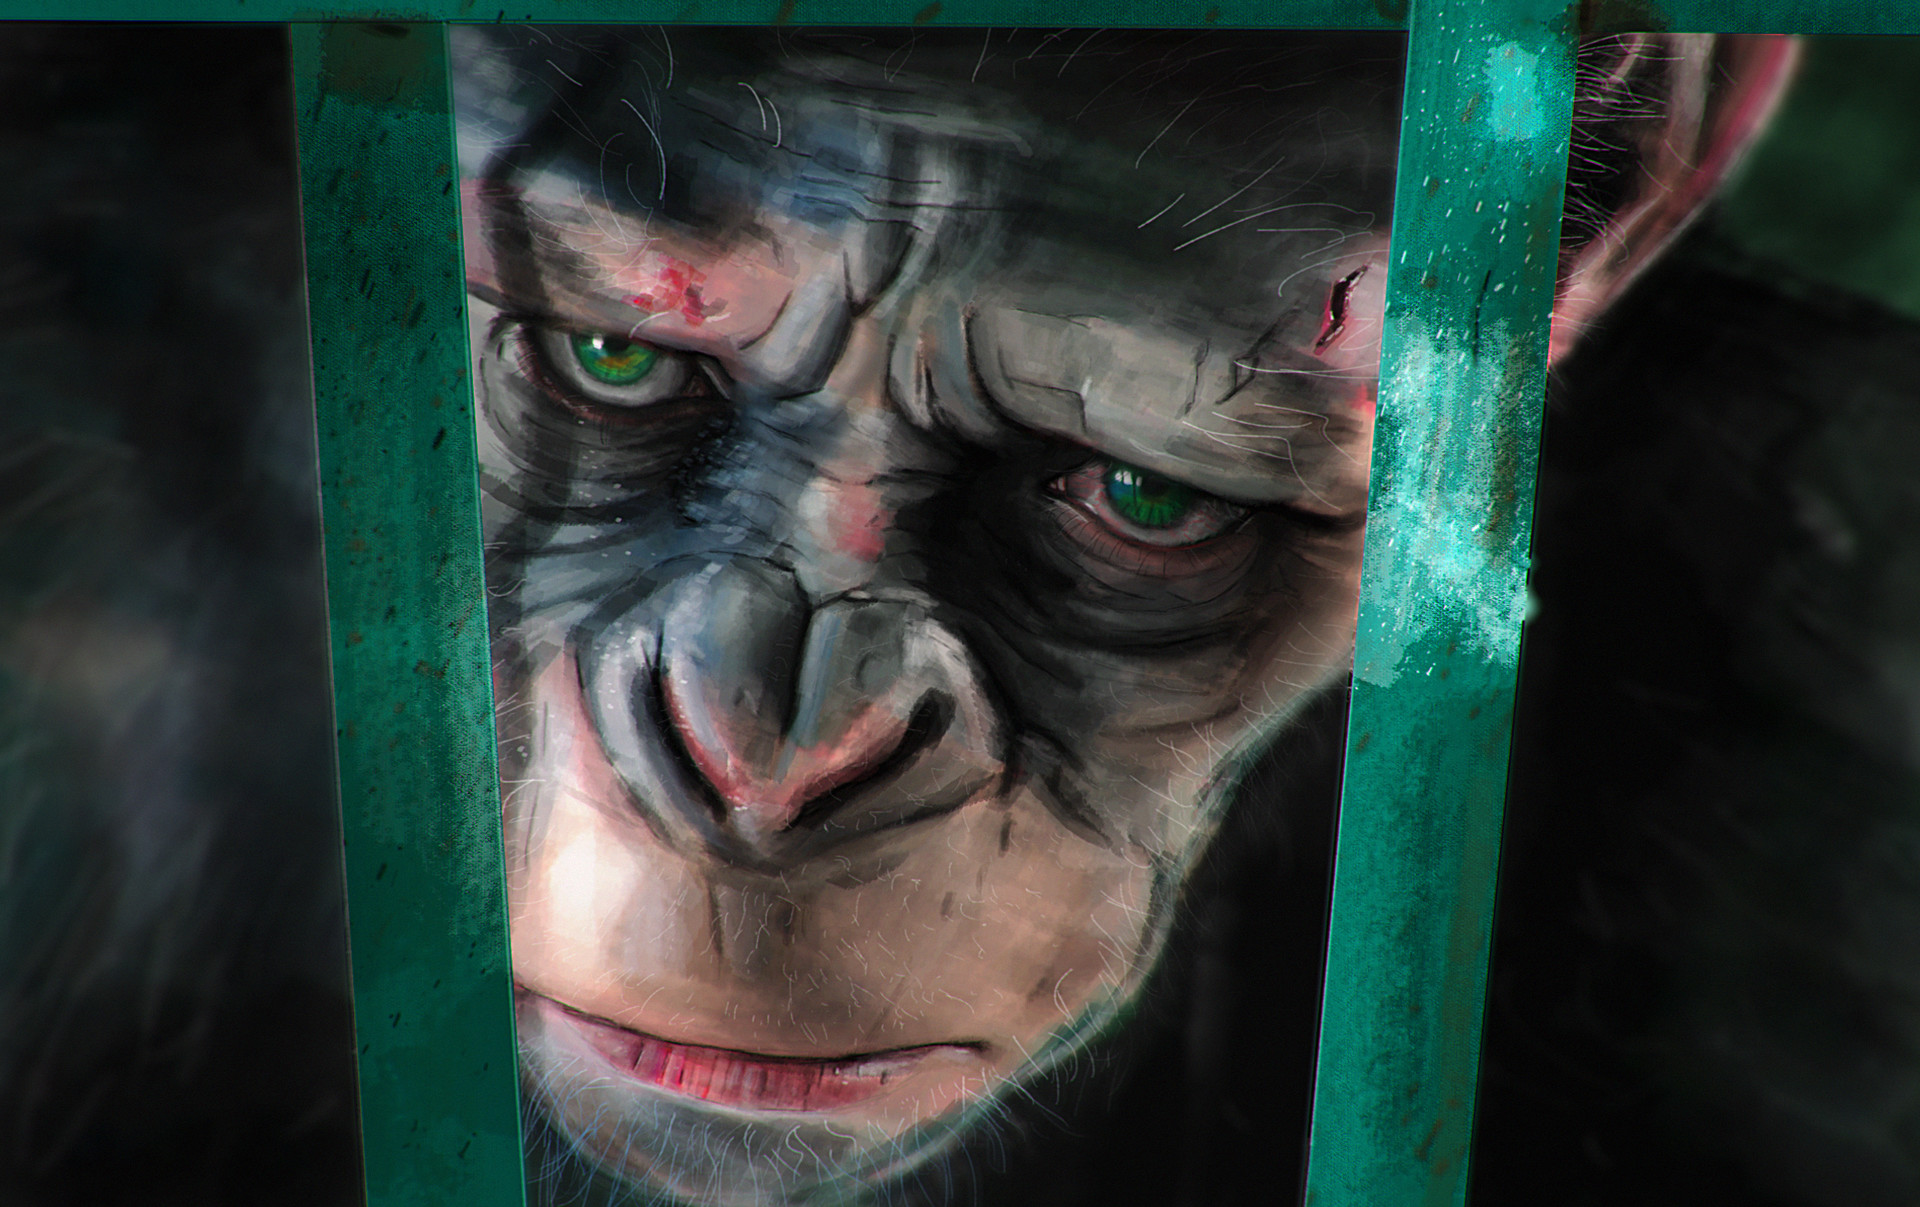 Martin jario war for the planet of the apes martinjario